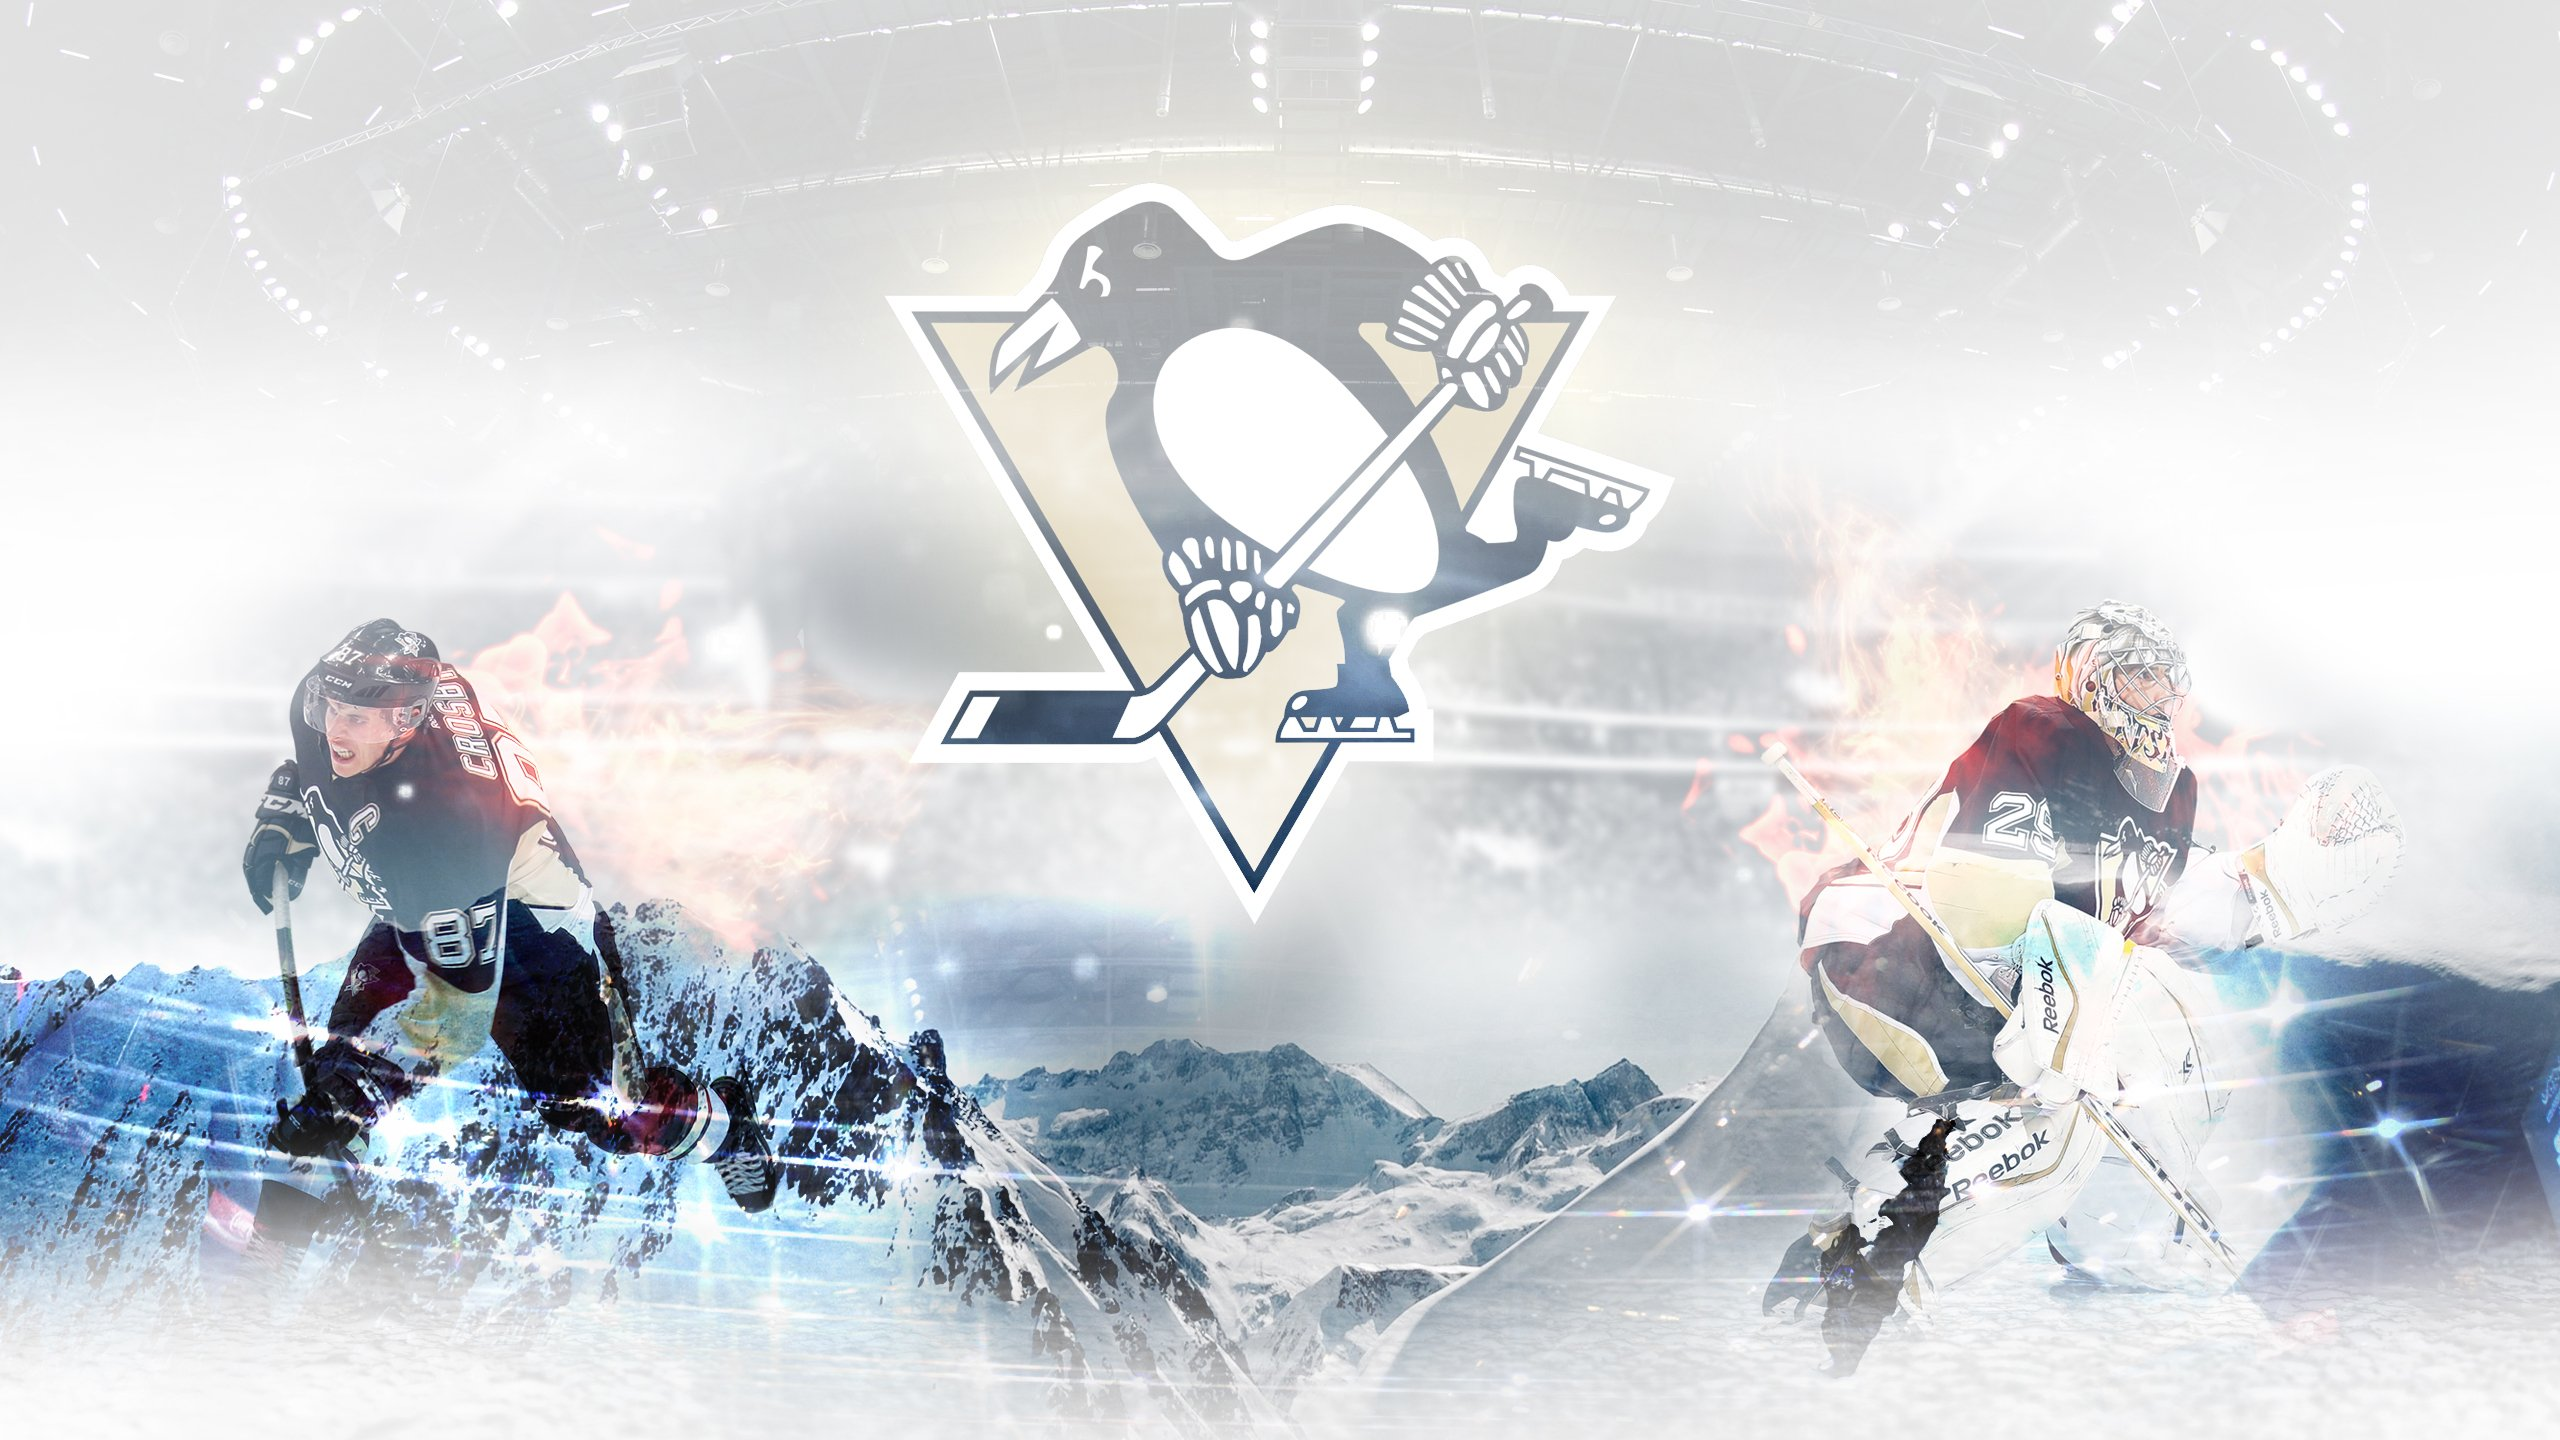 49+ iPhone 5S Pittsburgh Penguins Wallpaper on ...